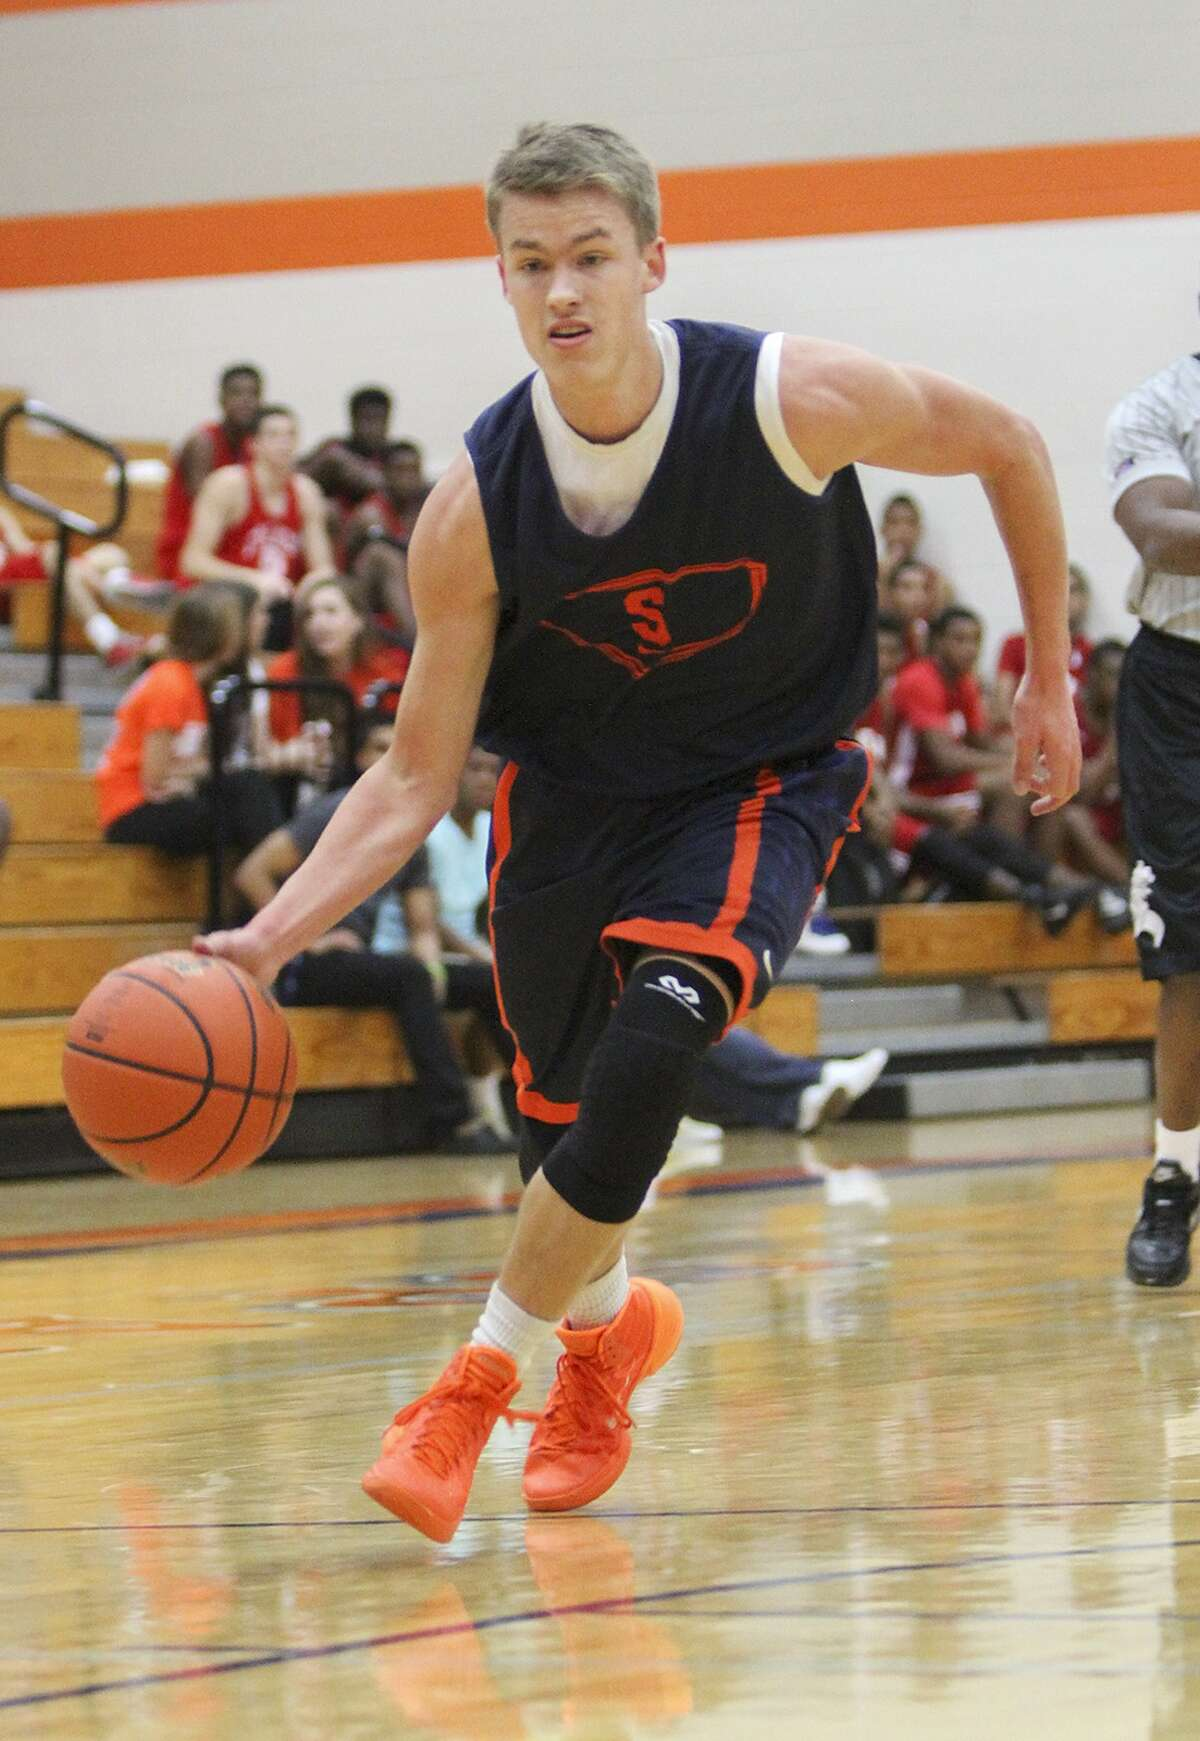 Seven Lakes' point guard King Turnbull is one of three senior team captains for the Spartans this year.